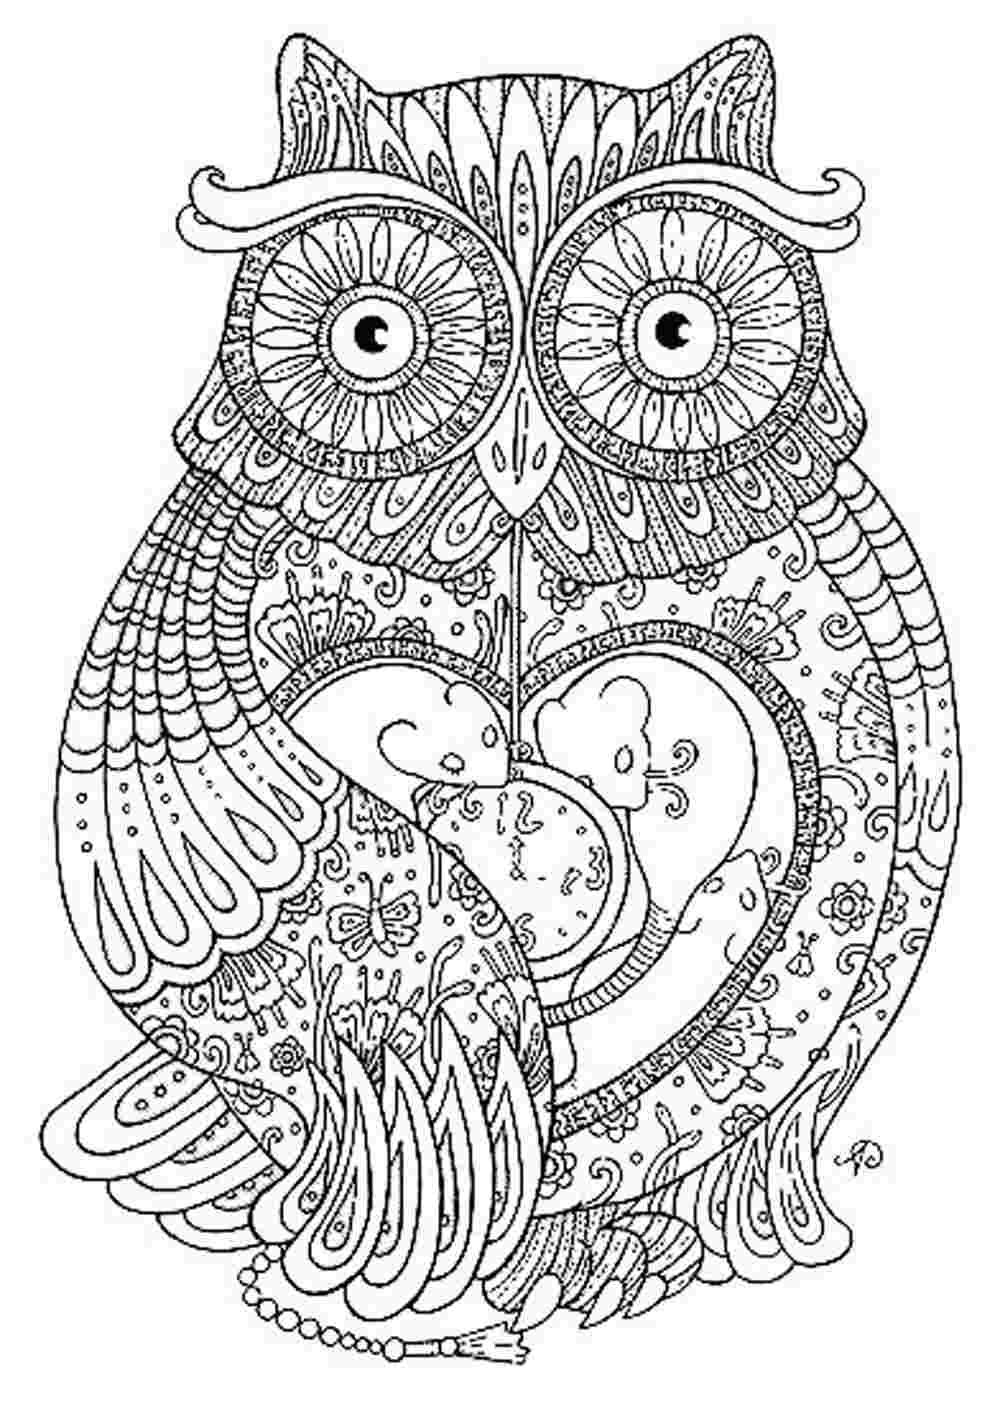 Free coloring pages for adults - Free Adult Coloring Pages